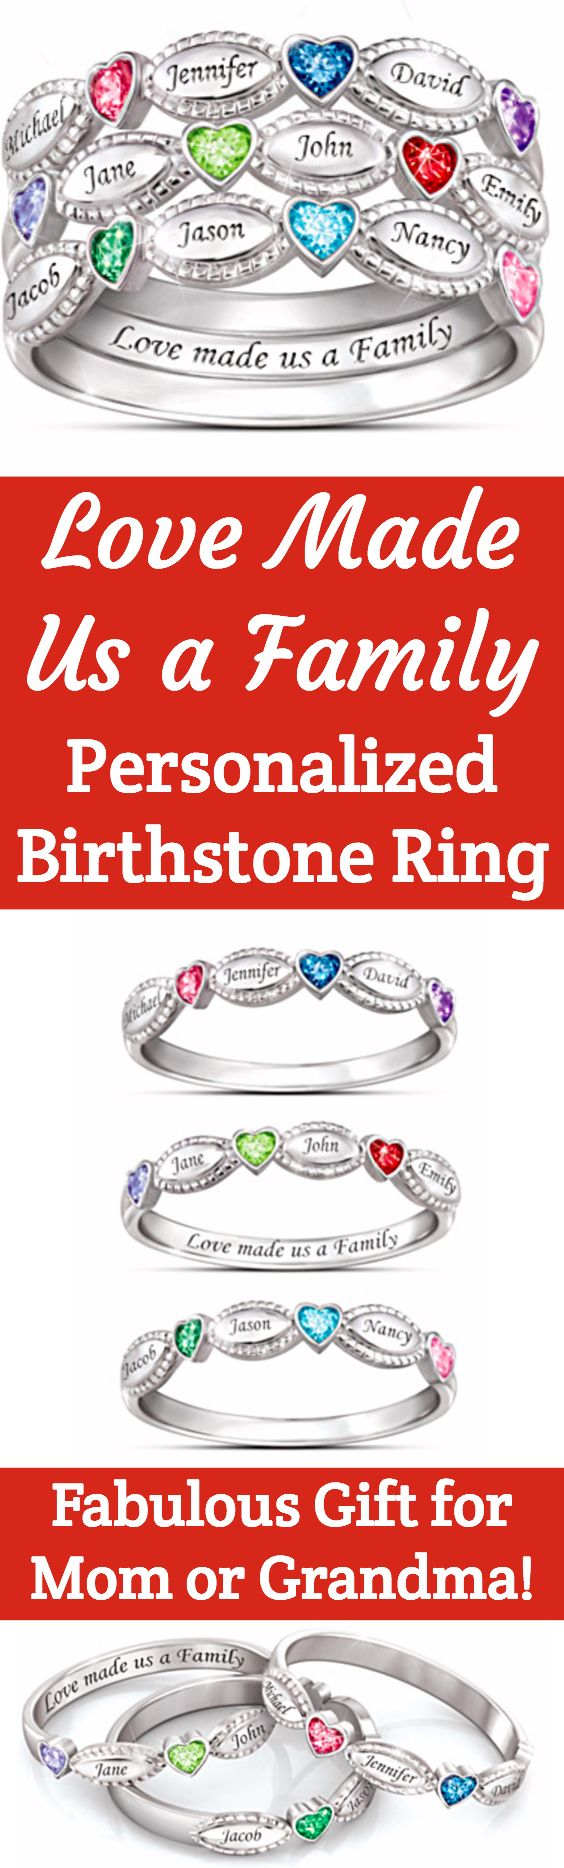 """Family birthstone ring with names - love this stacking ring for Mom!  Choose 2 or 3 stackable bands that features heart-shaped birthstones and kids' names.  The inside is inscribed, """"Love made us a family"""".  #giftsforher #giftsformom"""